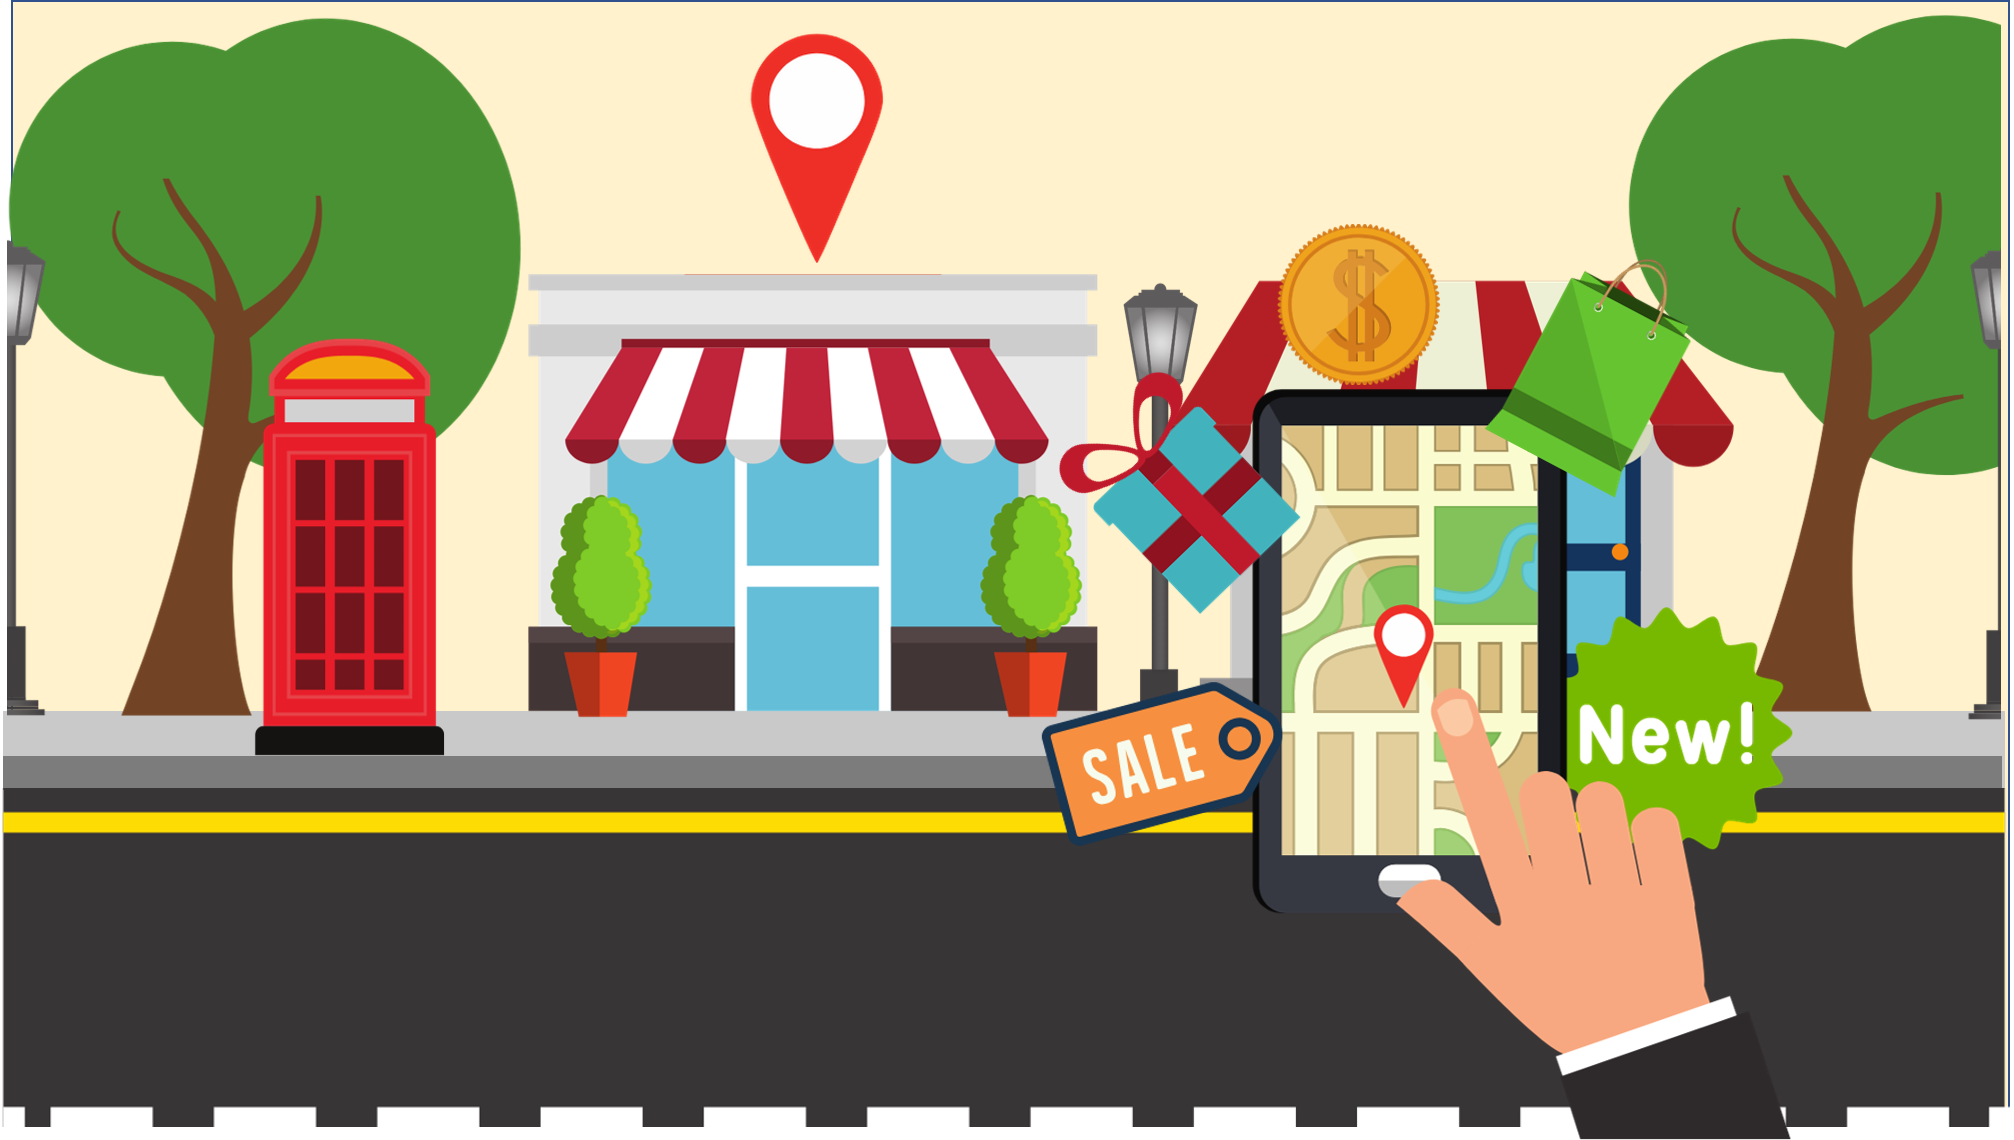 Location Based Marketing & Advertising Trends for 2020